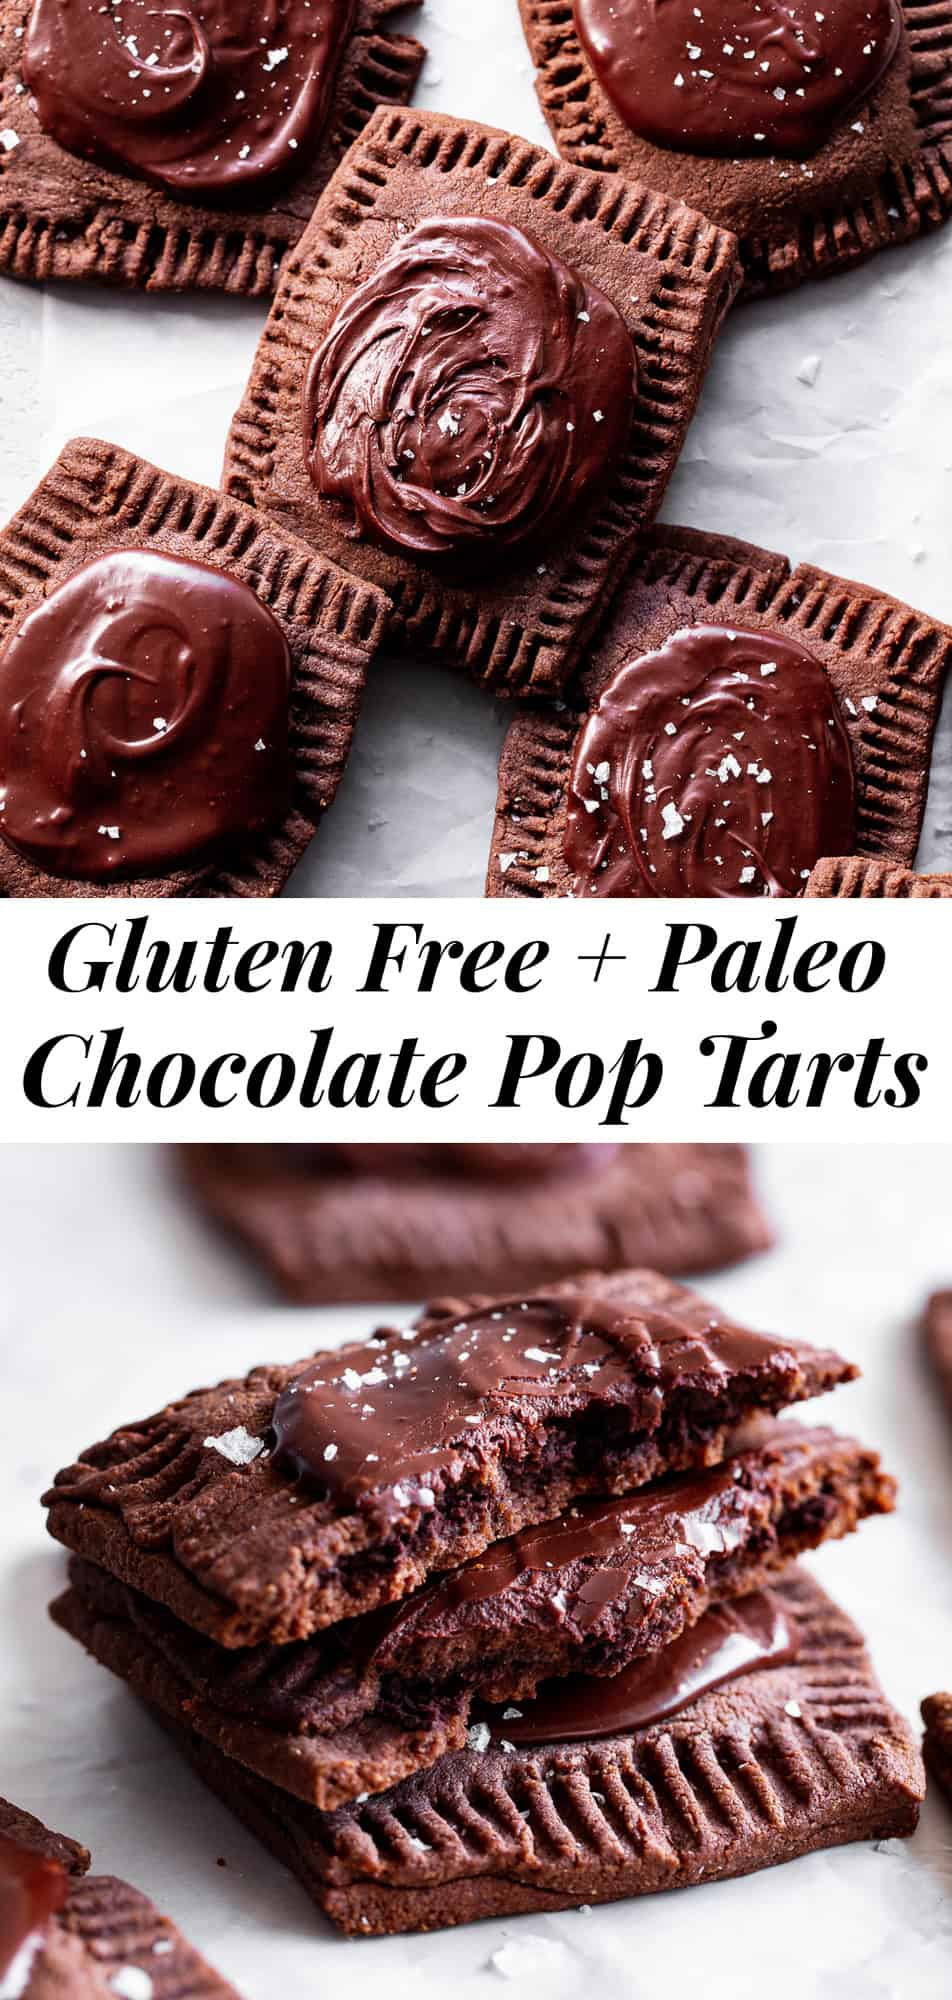 These frosted chocolate fudge pop tarts have passed all the tests! Gooey dark chocolate fudge filling in a flaky grain free pastry crust topped with the perfect chocolate frosting. They're family approved and great for a special weekend baking project! Grain free with paleo and dairy free options. #paleo #cleaneating #poptarts #glutenfree #grainfree